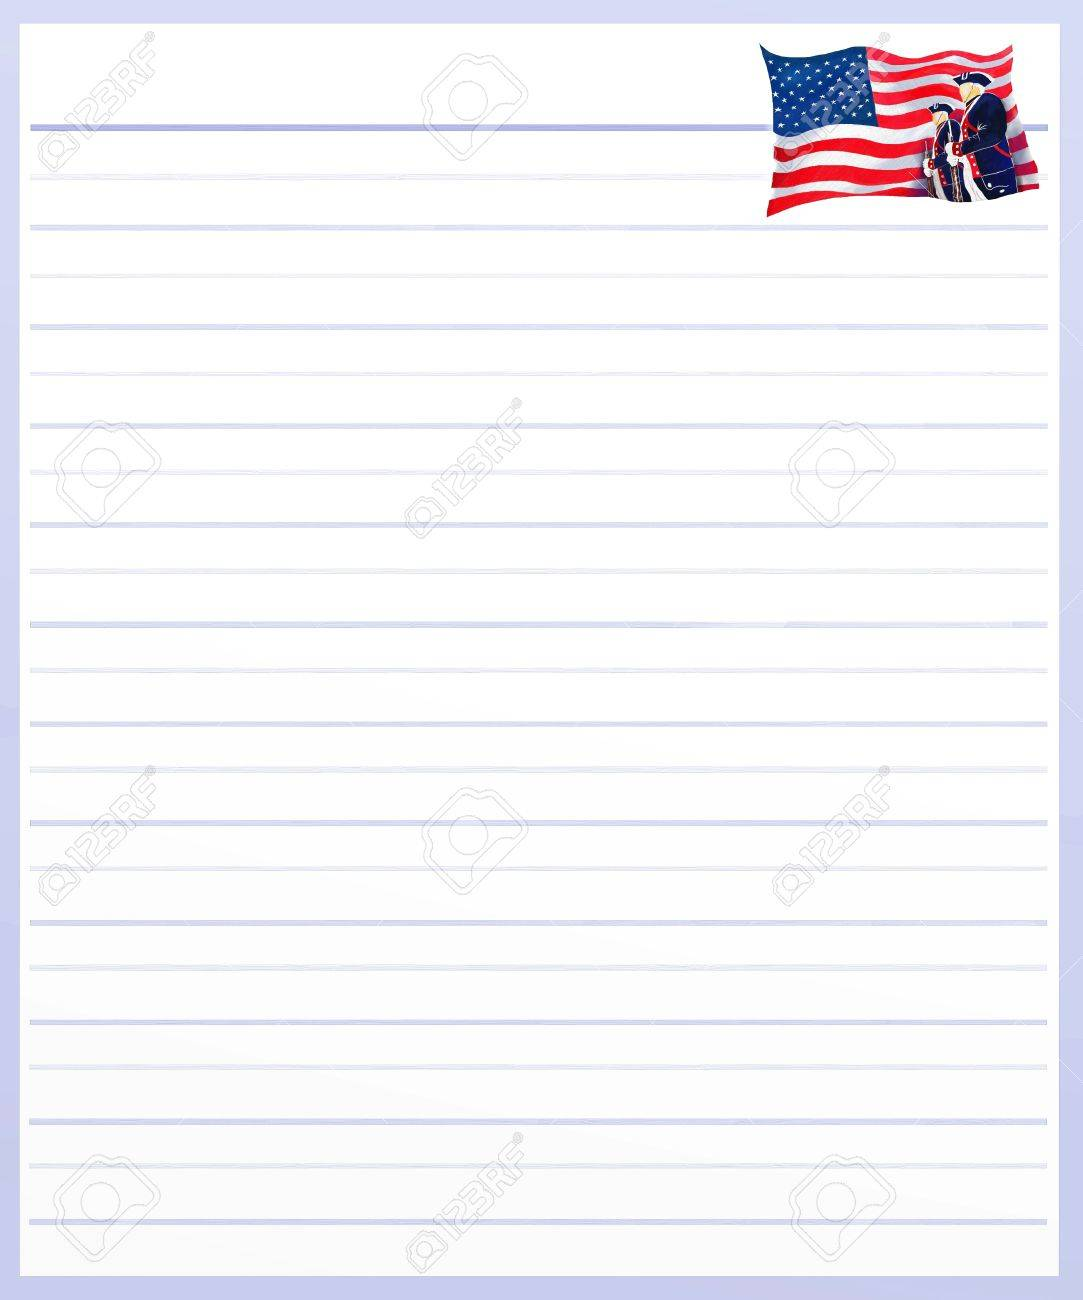 Hand Drawing of Independence Day Flag on A Blank Purple Lined Paper Background with Copy Space for Text Decorated Stock Photo - 17417531